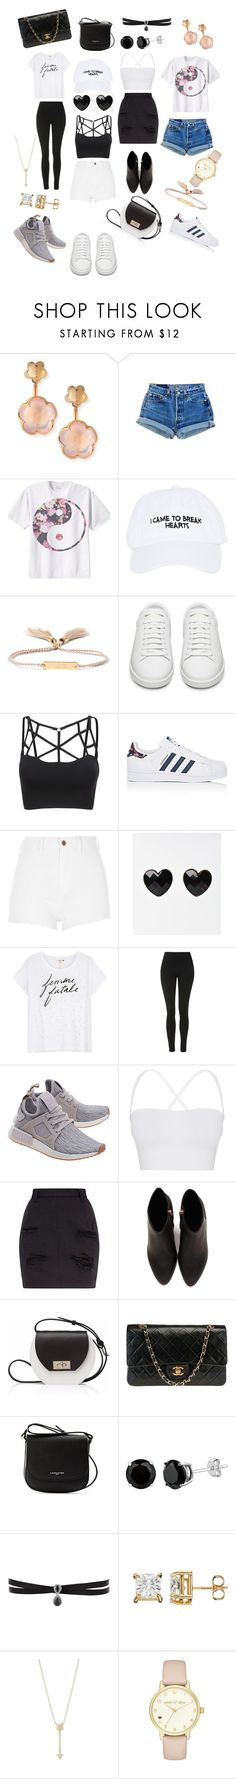 """""""🔱Look the day 🔱"""" by girlsbossbio ❤ liked on Polyvore featuring Pasquale Bruni, Nasaseasons, Chloé, Yves Saint Laurent, adidas, River Island, Sundry, Topshop, adidas Originals and Theory"""